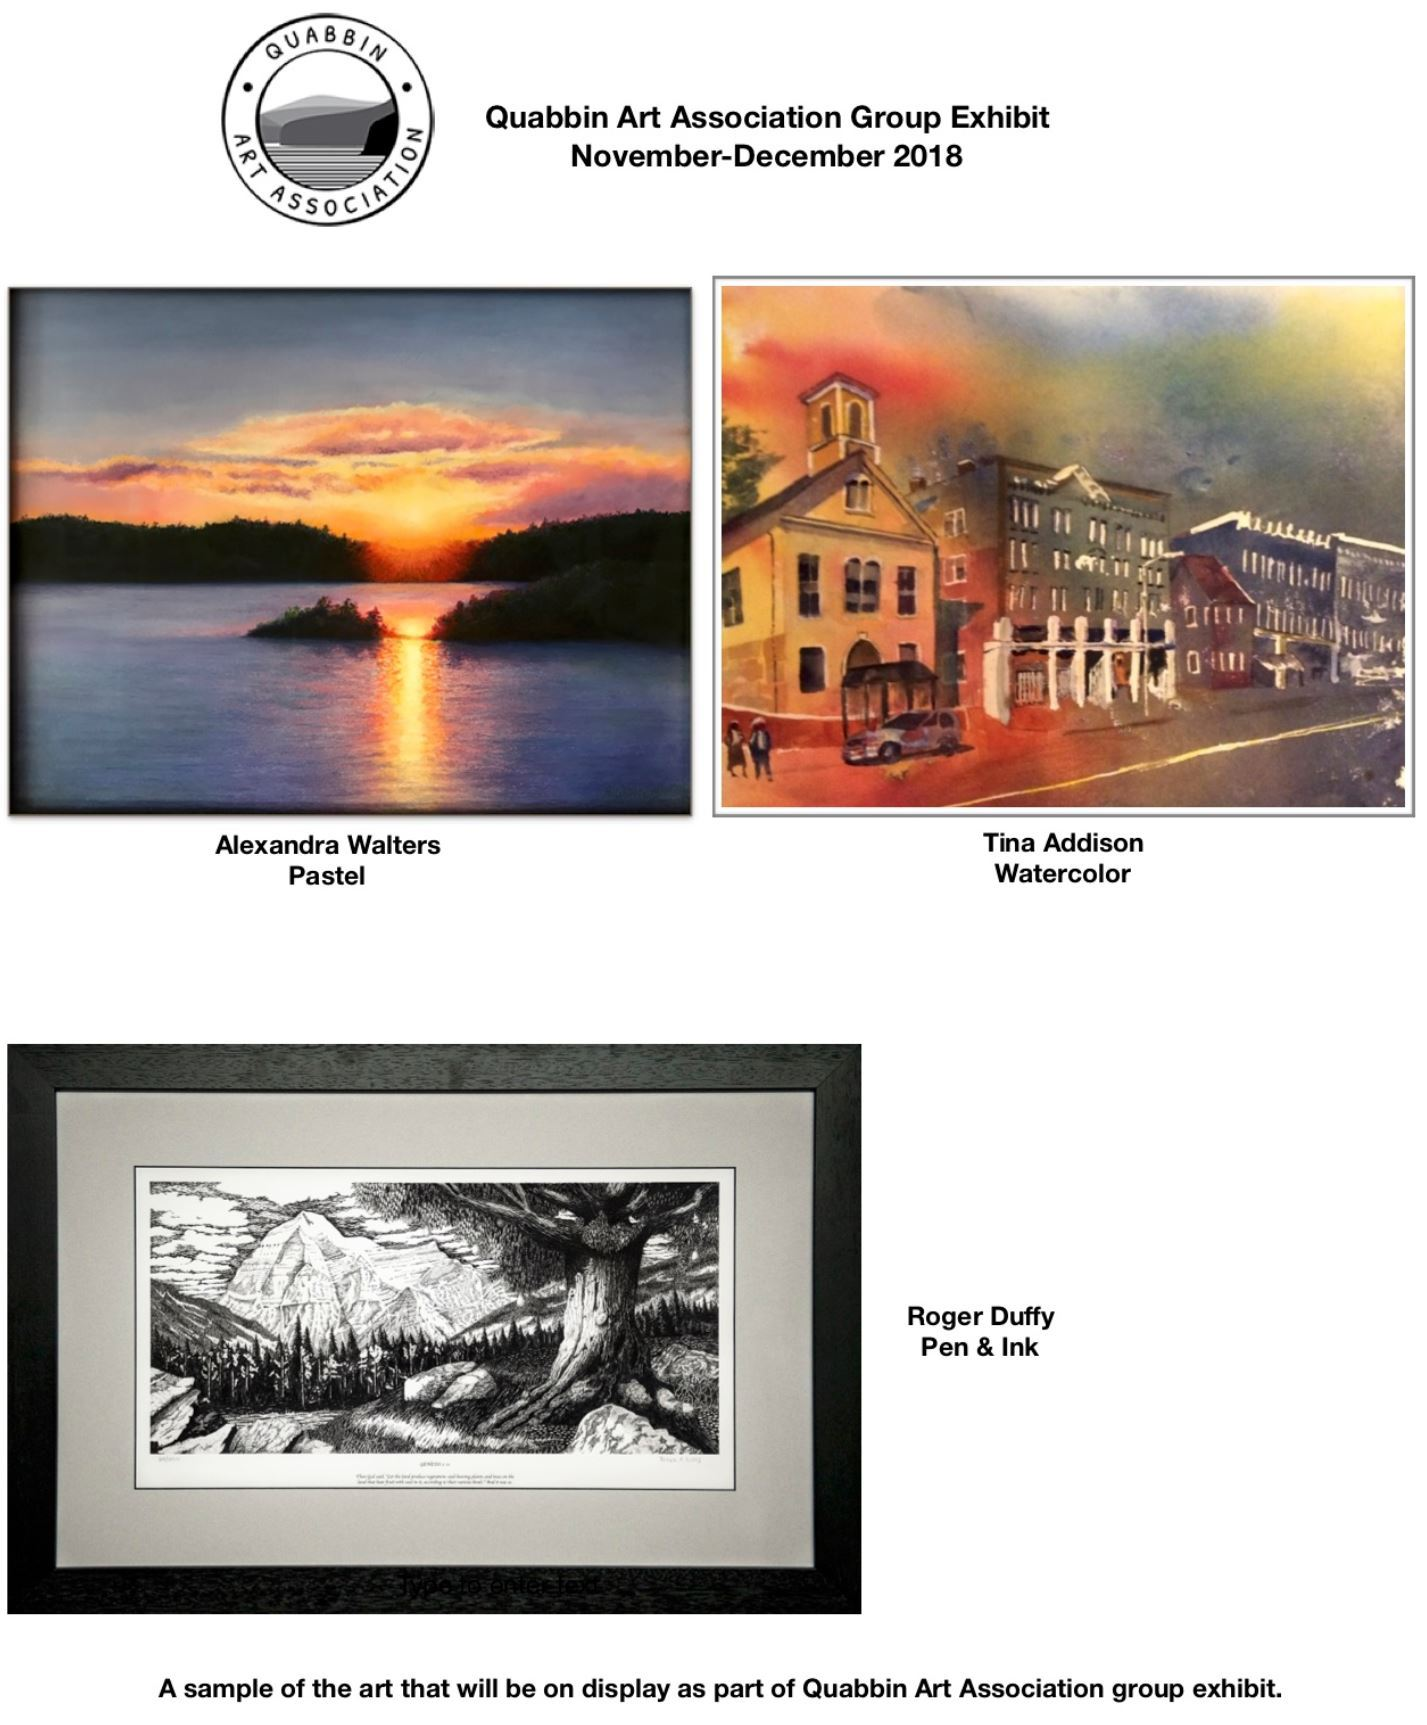 Quabbin Group Exhibit Image